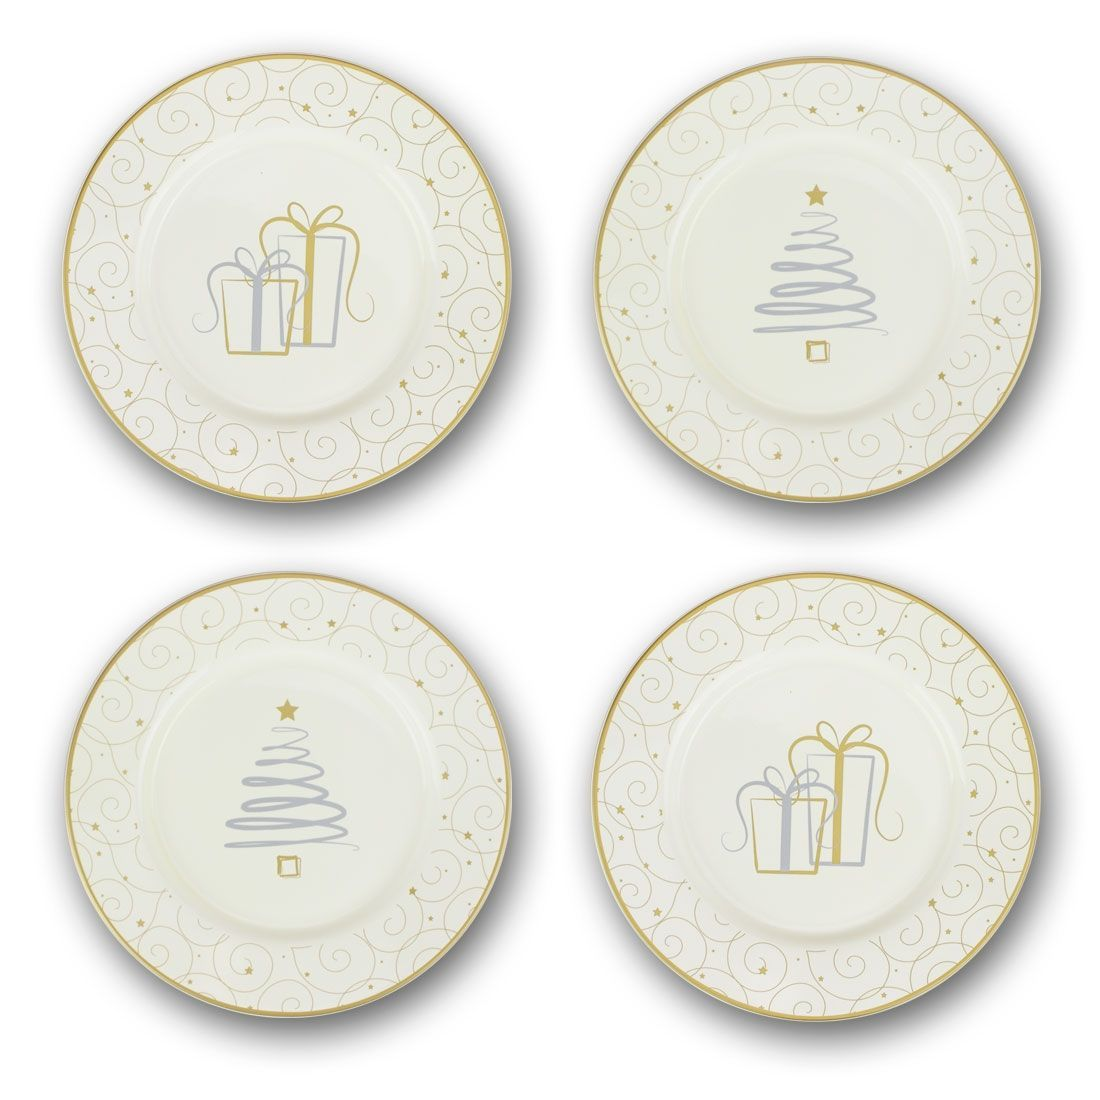 Russ Berrie Christmas Dessert Plates Set of 4 Grey  sc 1 st  Pinterest & Russ Berrie Christmas Dessert Plates Set of 4 Grey | Products ...